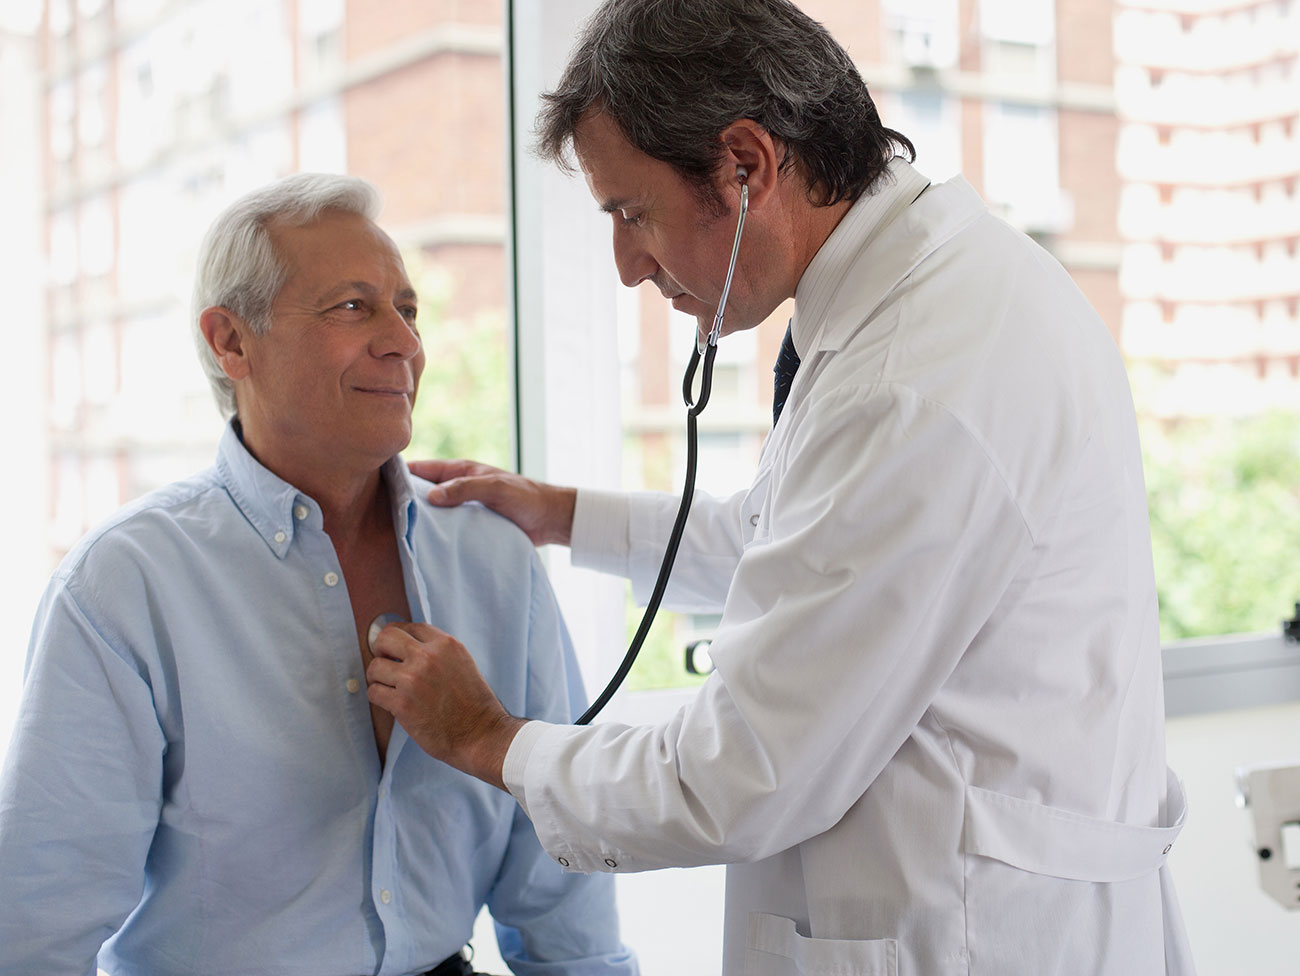 Improving emergency care for patients with chest pain